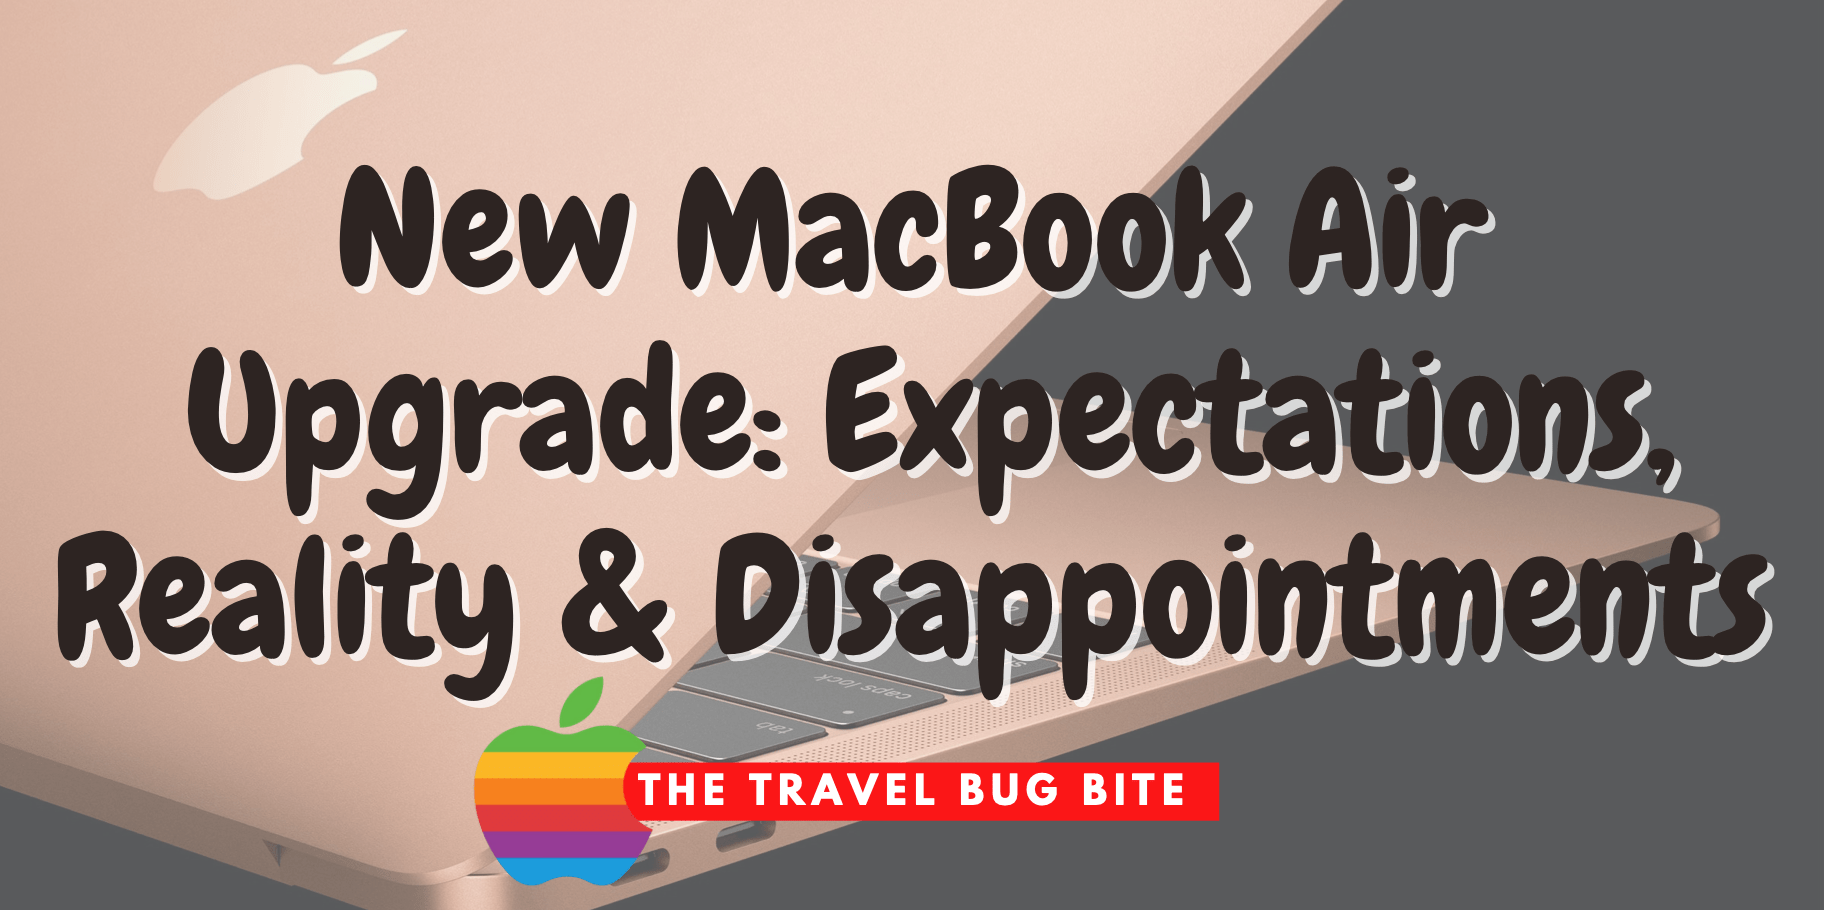 New MacBook Air, New MacBook Air Upgrade: Expectations, Reality & Disappointments, The Travel Bug Bite